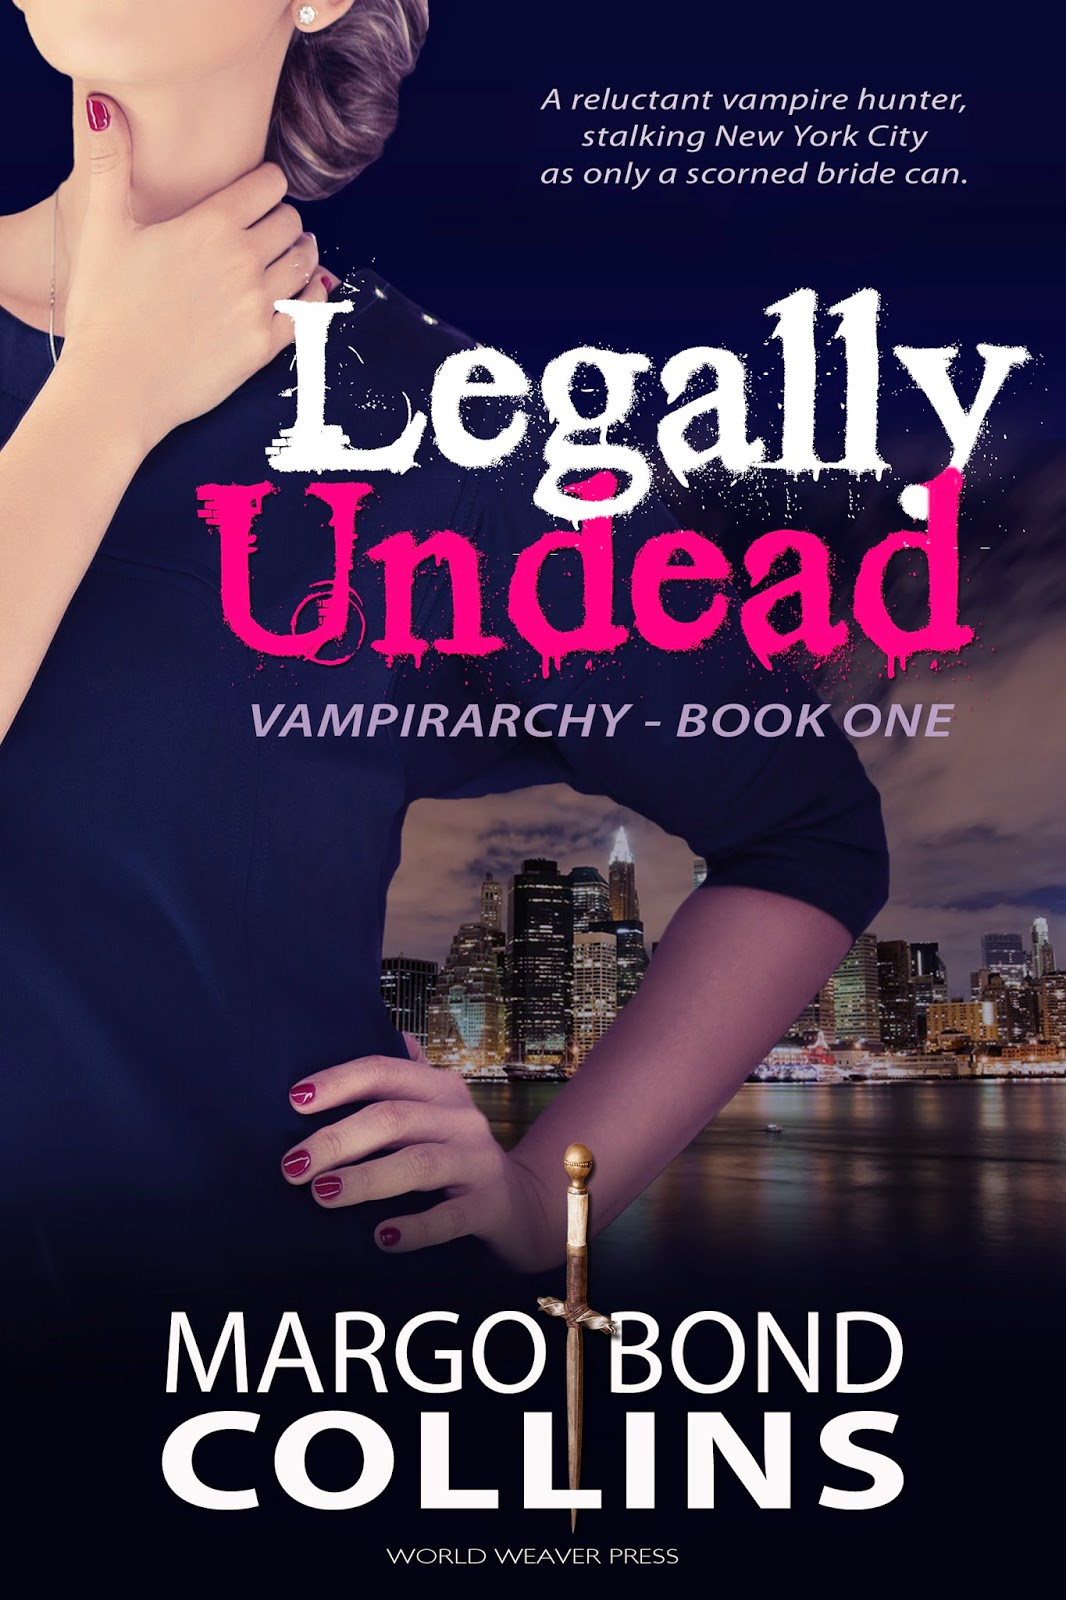 http://www.amazon.com/Legally-Undead-Vampirarchy-Book-1-ebook/dp/B00KKV44BK/